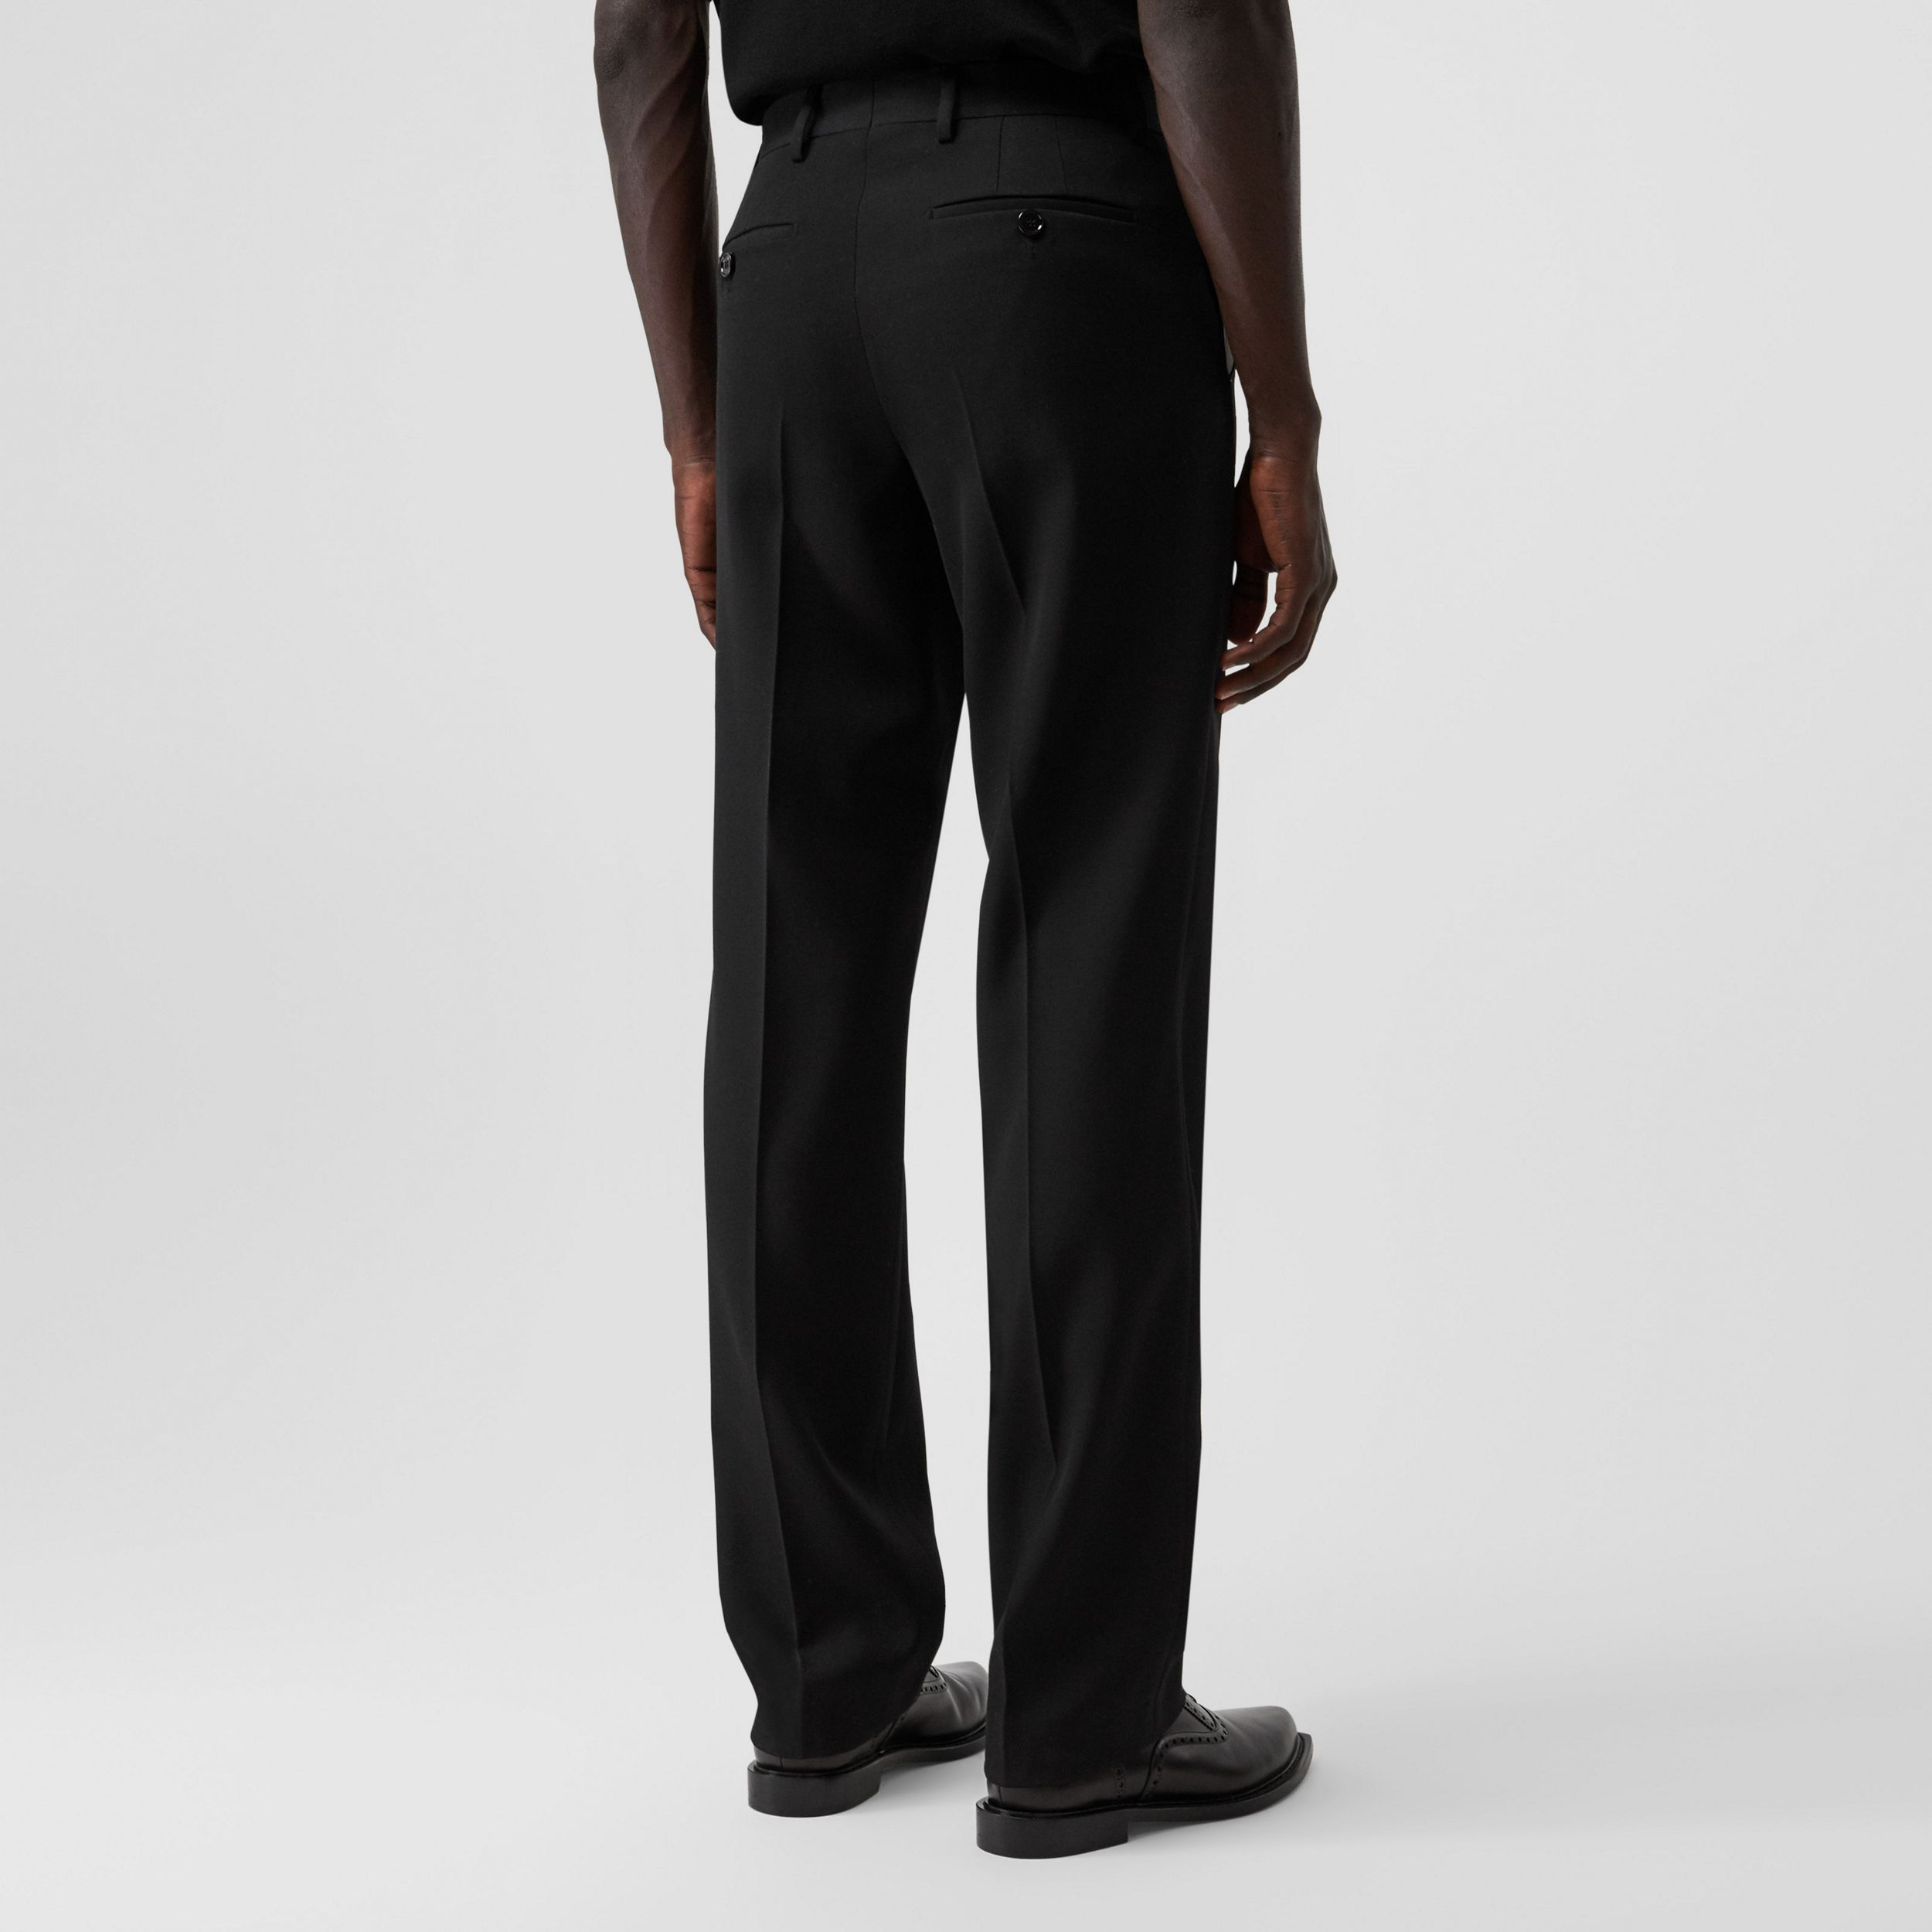 English Fit Pocket Detail Wool Tailored Trousers in Black - Men | Burberry - 3